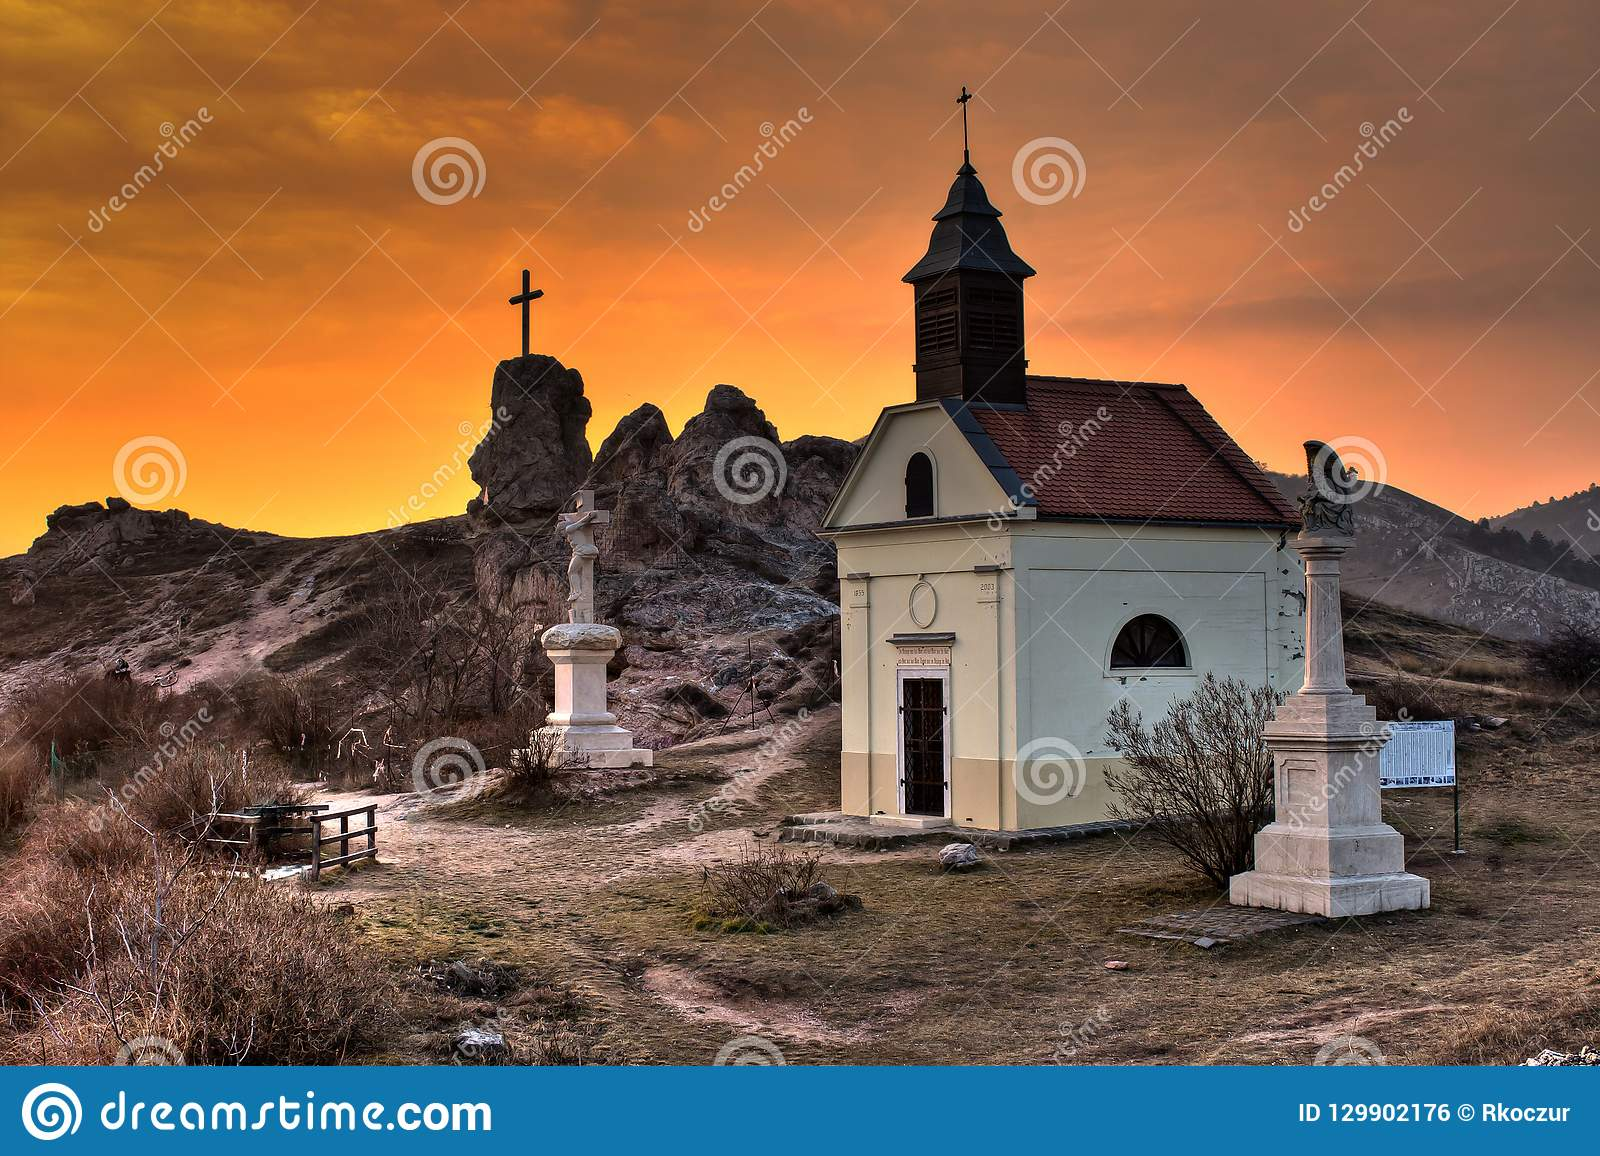 Little chapel and statues in the sunset at Budaörs, Hungary